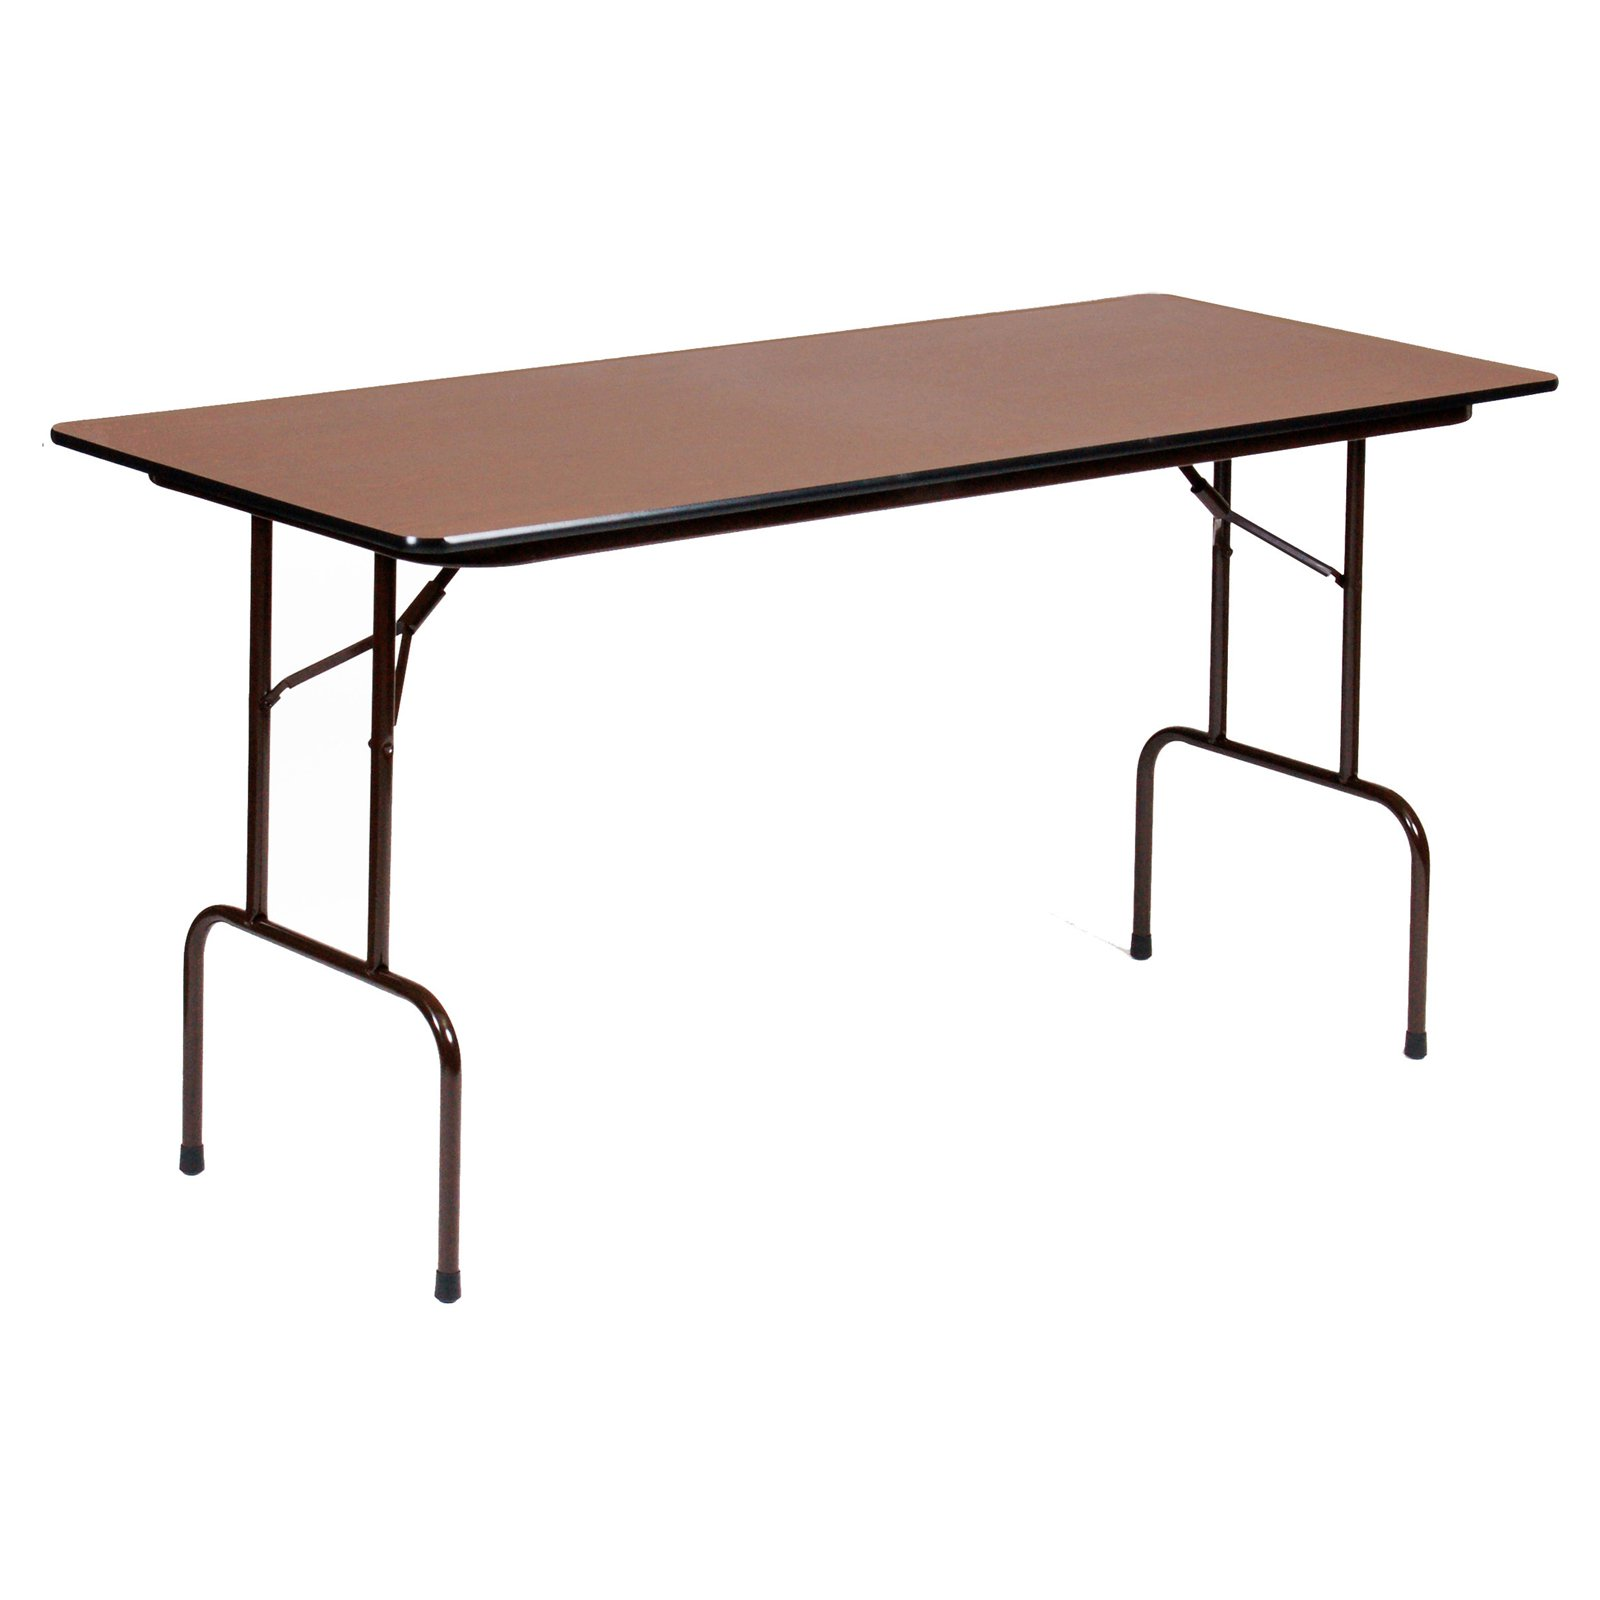 Gentil Rectangle Counter Height Folding Table   Walmart.com